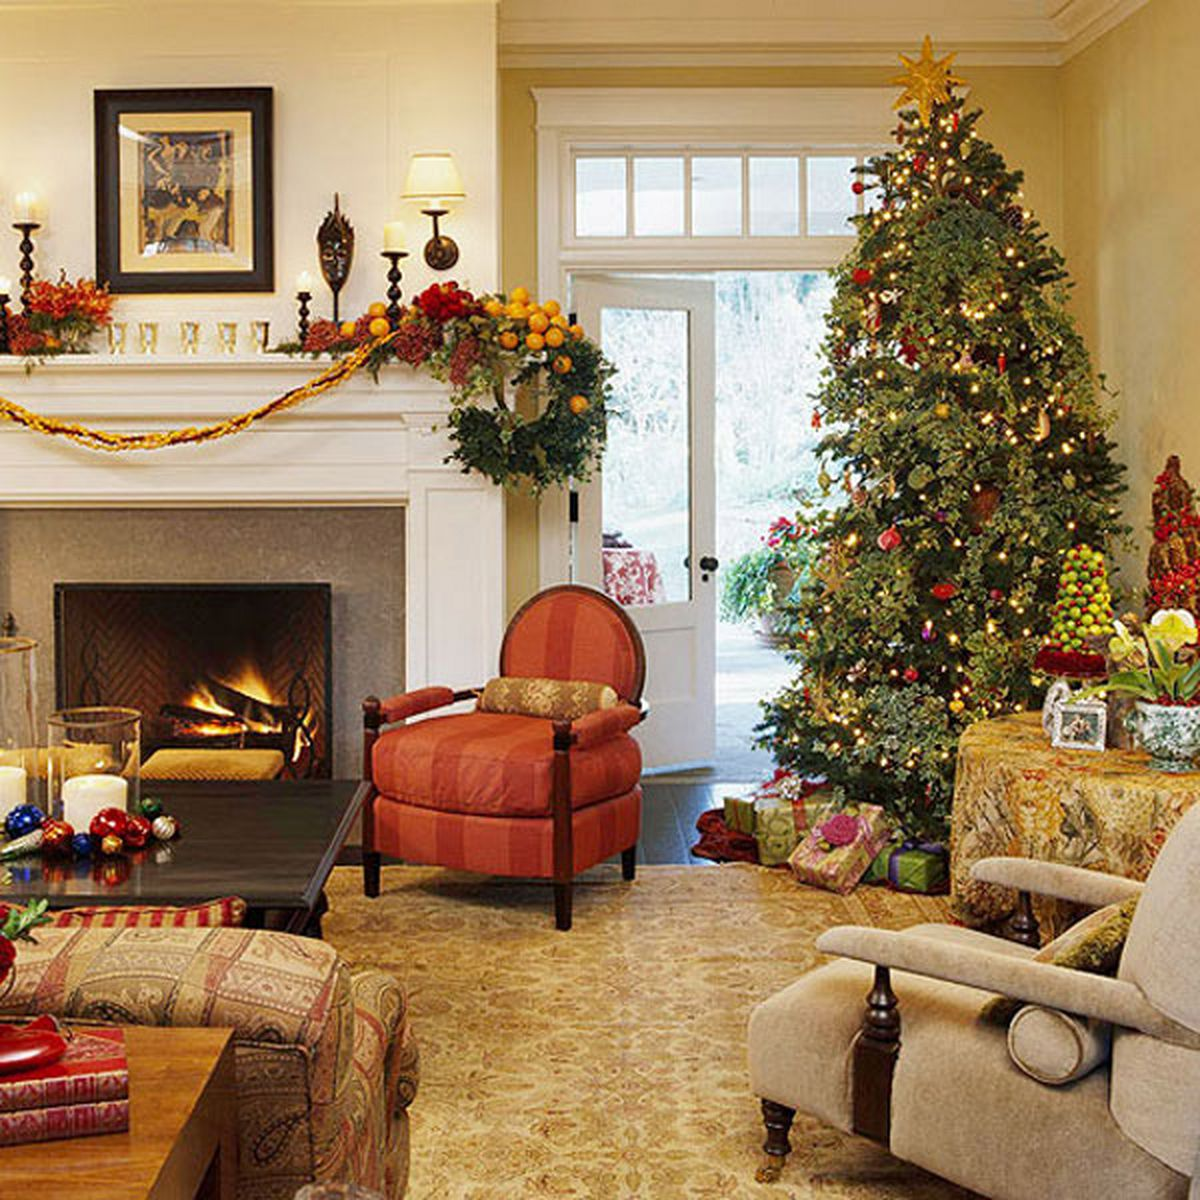 Magical christmas living room ideas for Decoration ideas living room